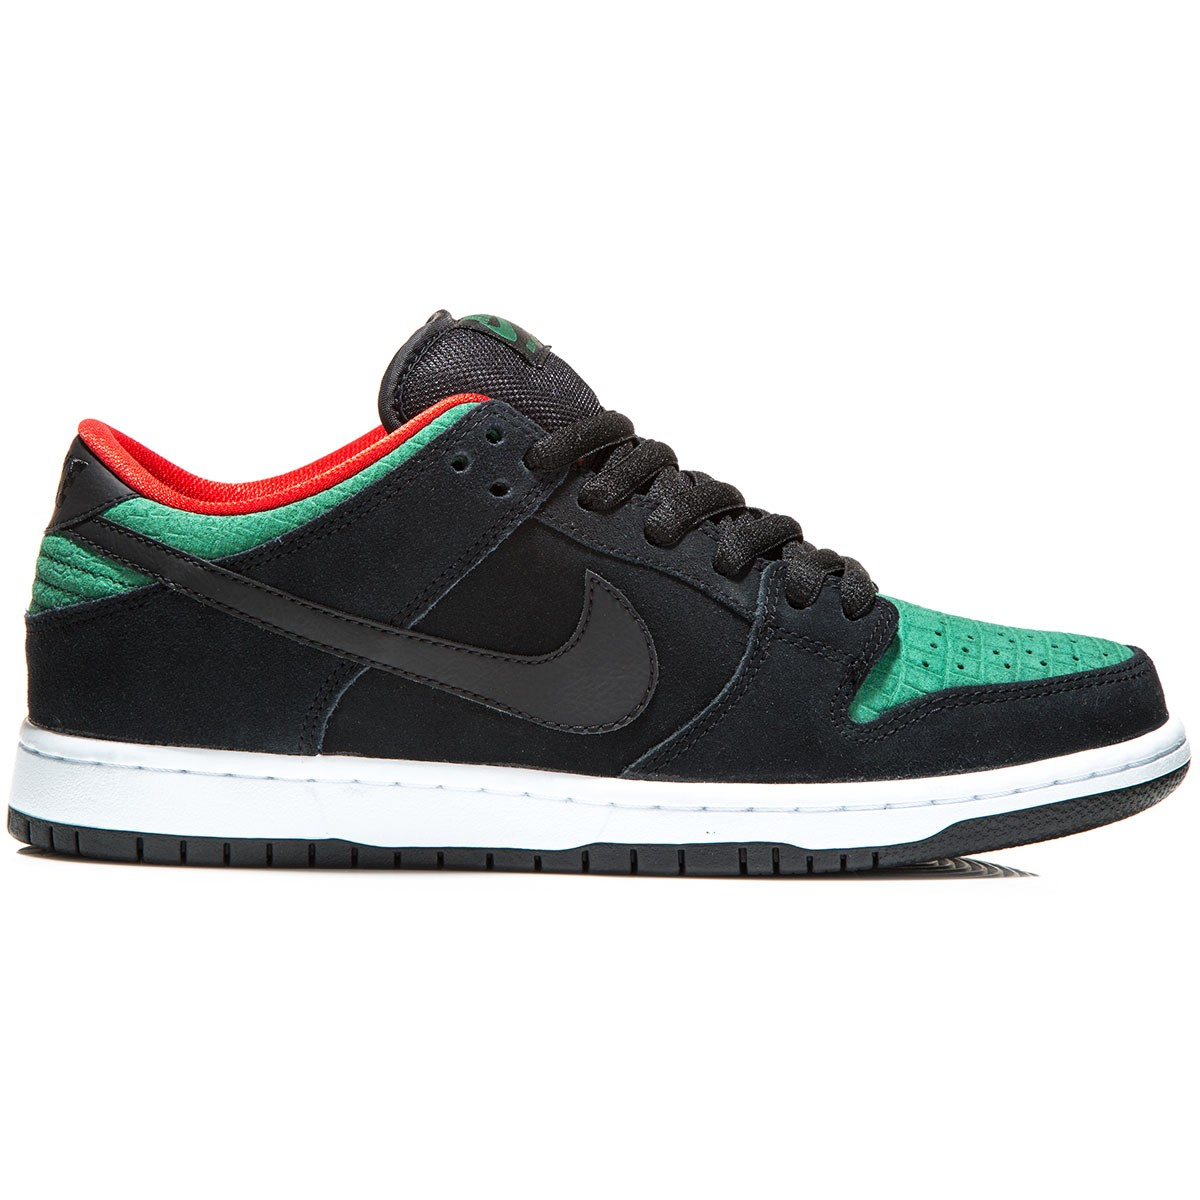 timeless design 6fa6c e718e Nike Dunk Low Pro SB Shoes